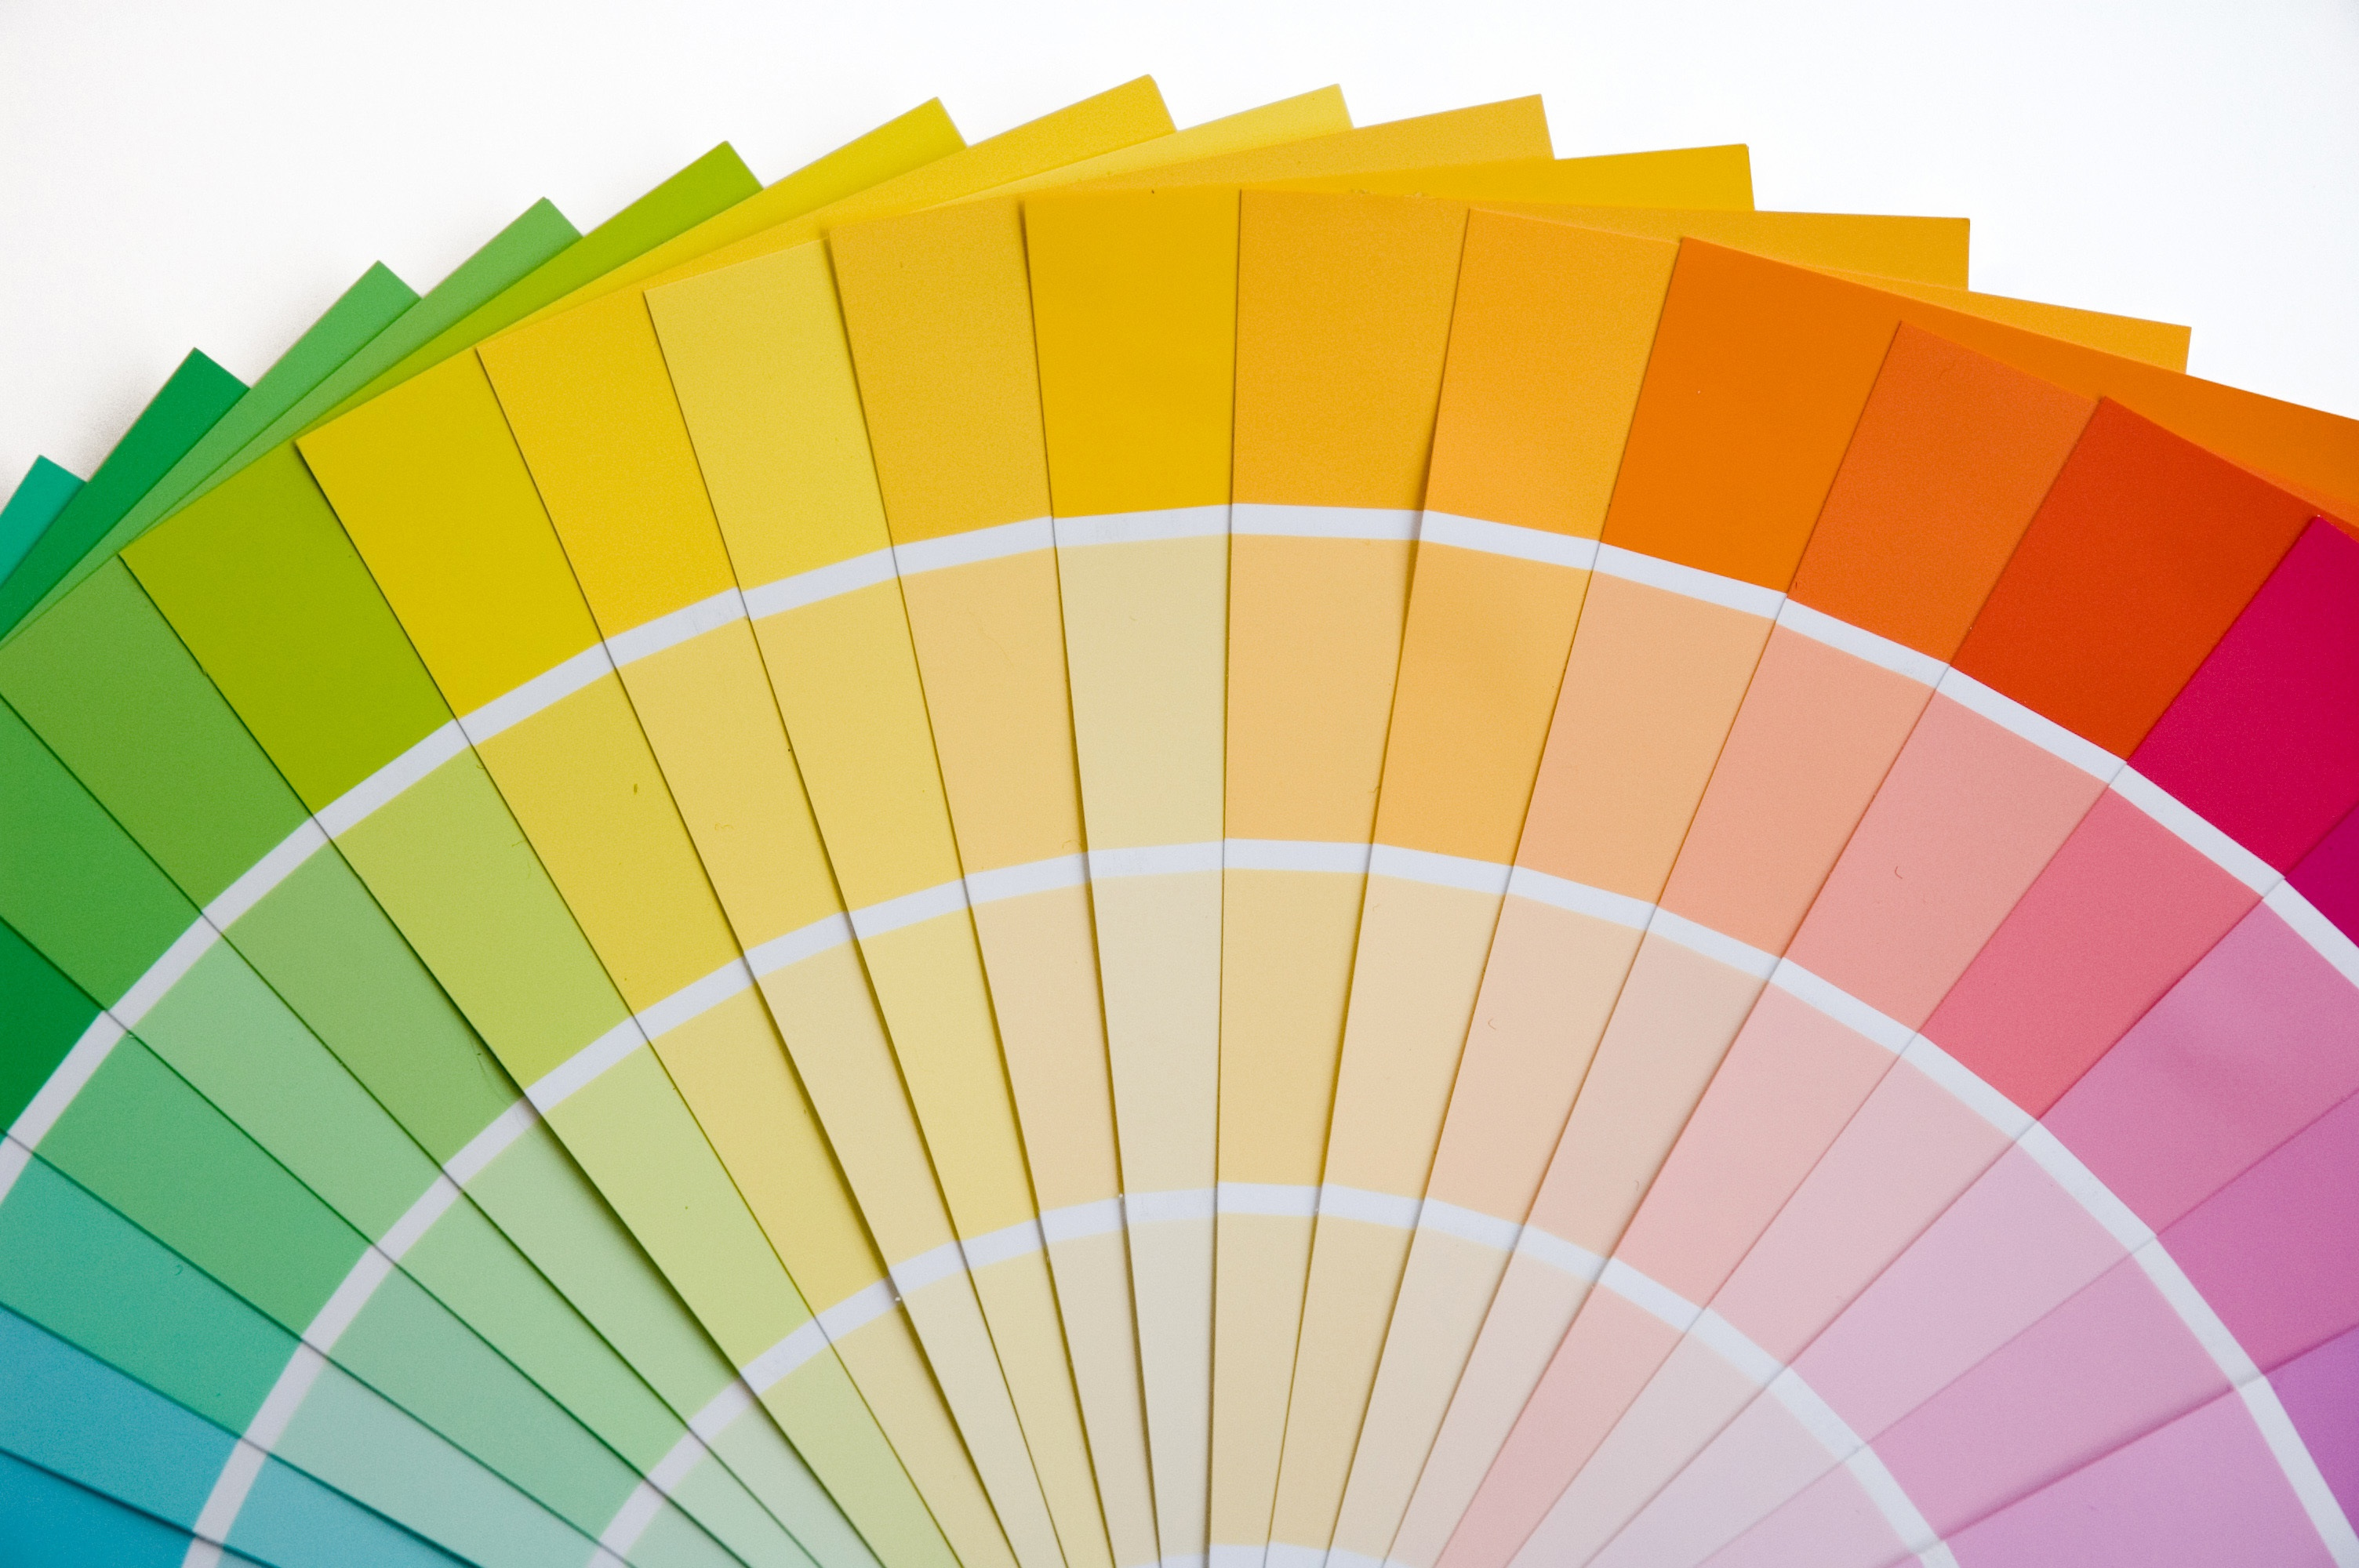 wall-painting-colors-paintswatch